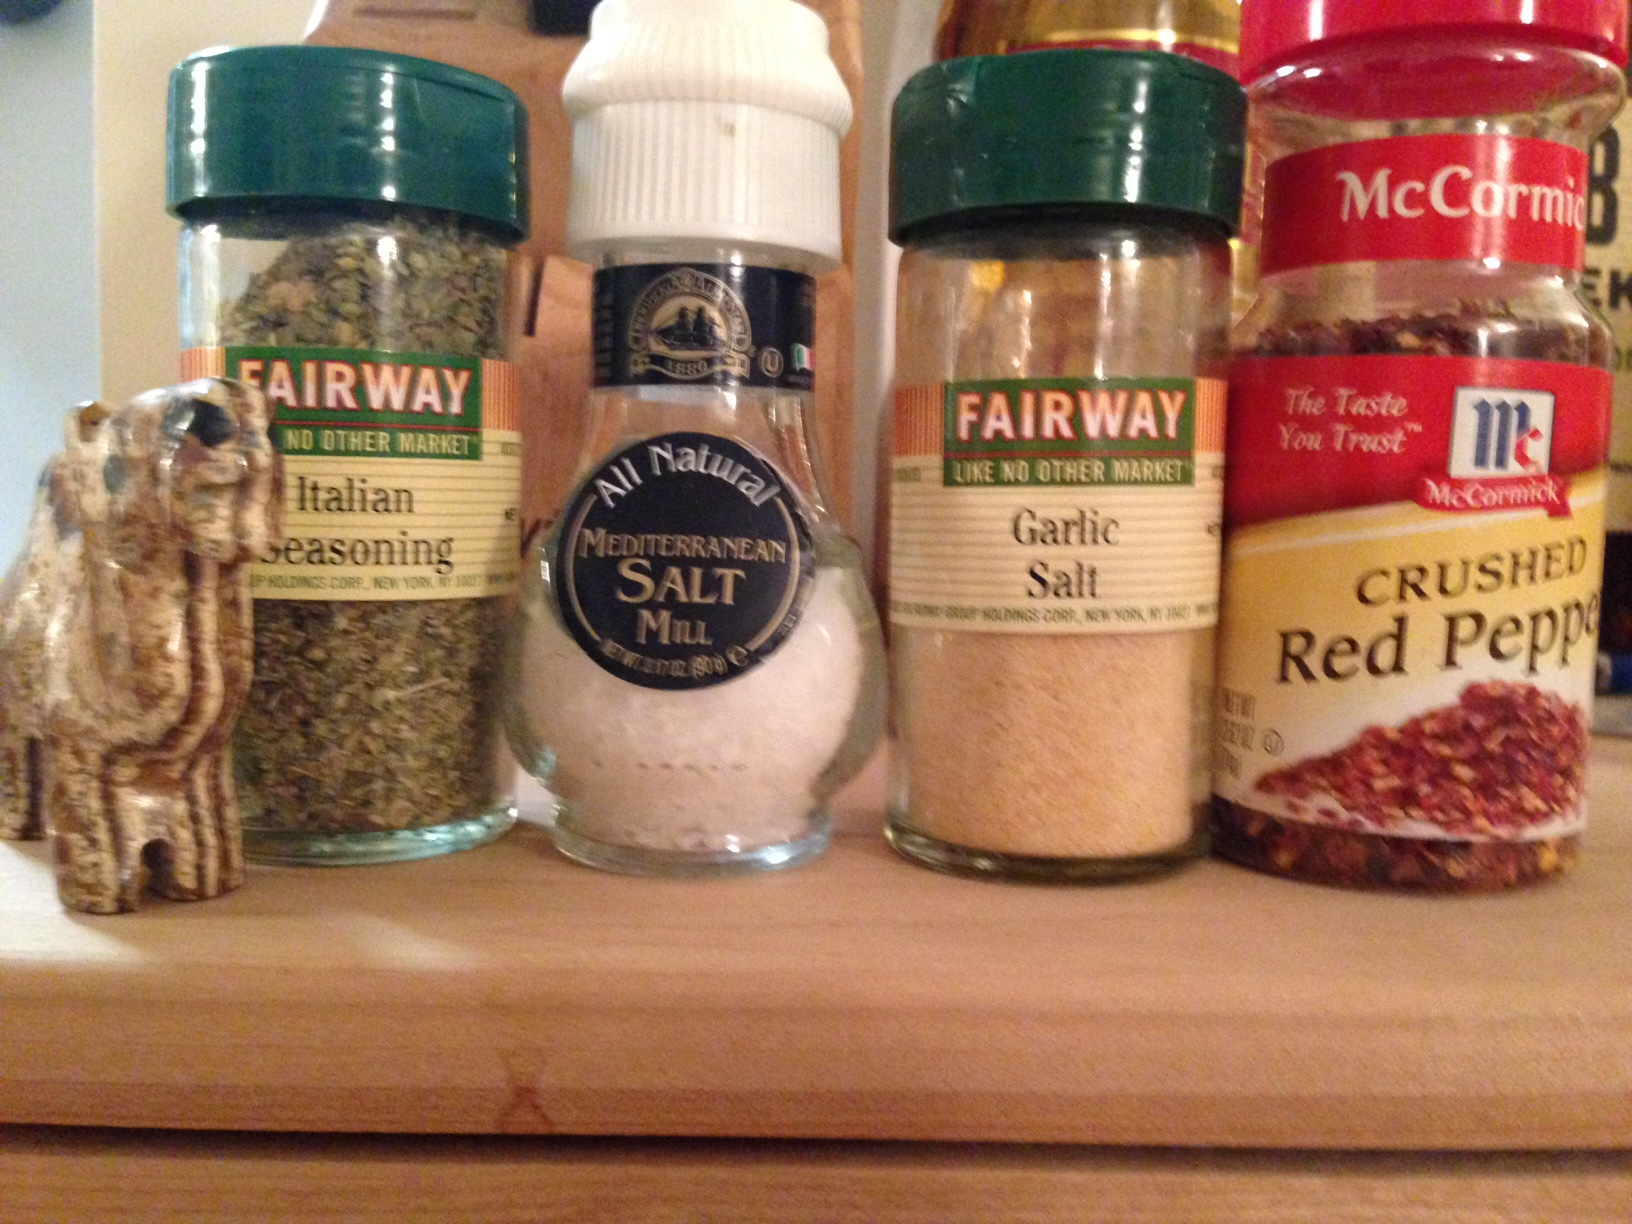 hey we're the seasonings. we met at Fairway and now we live together in harmony in the '60s